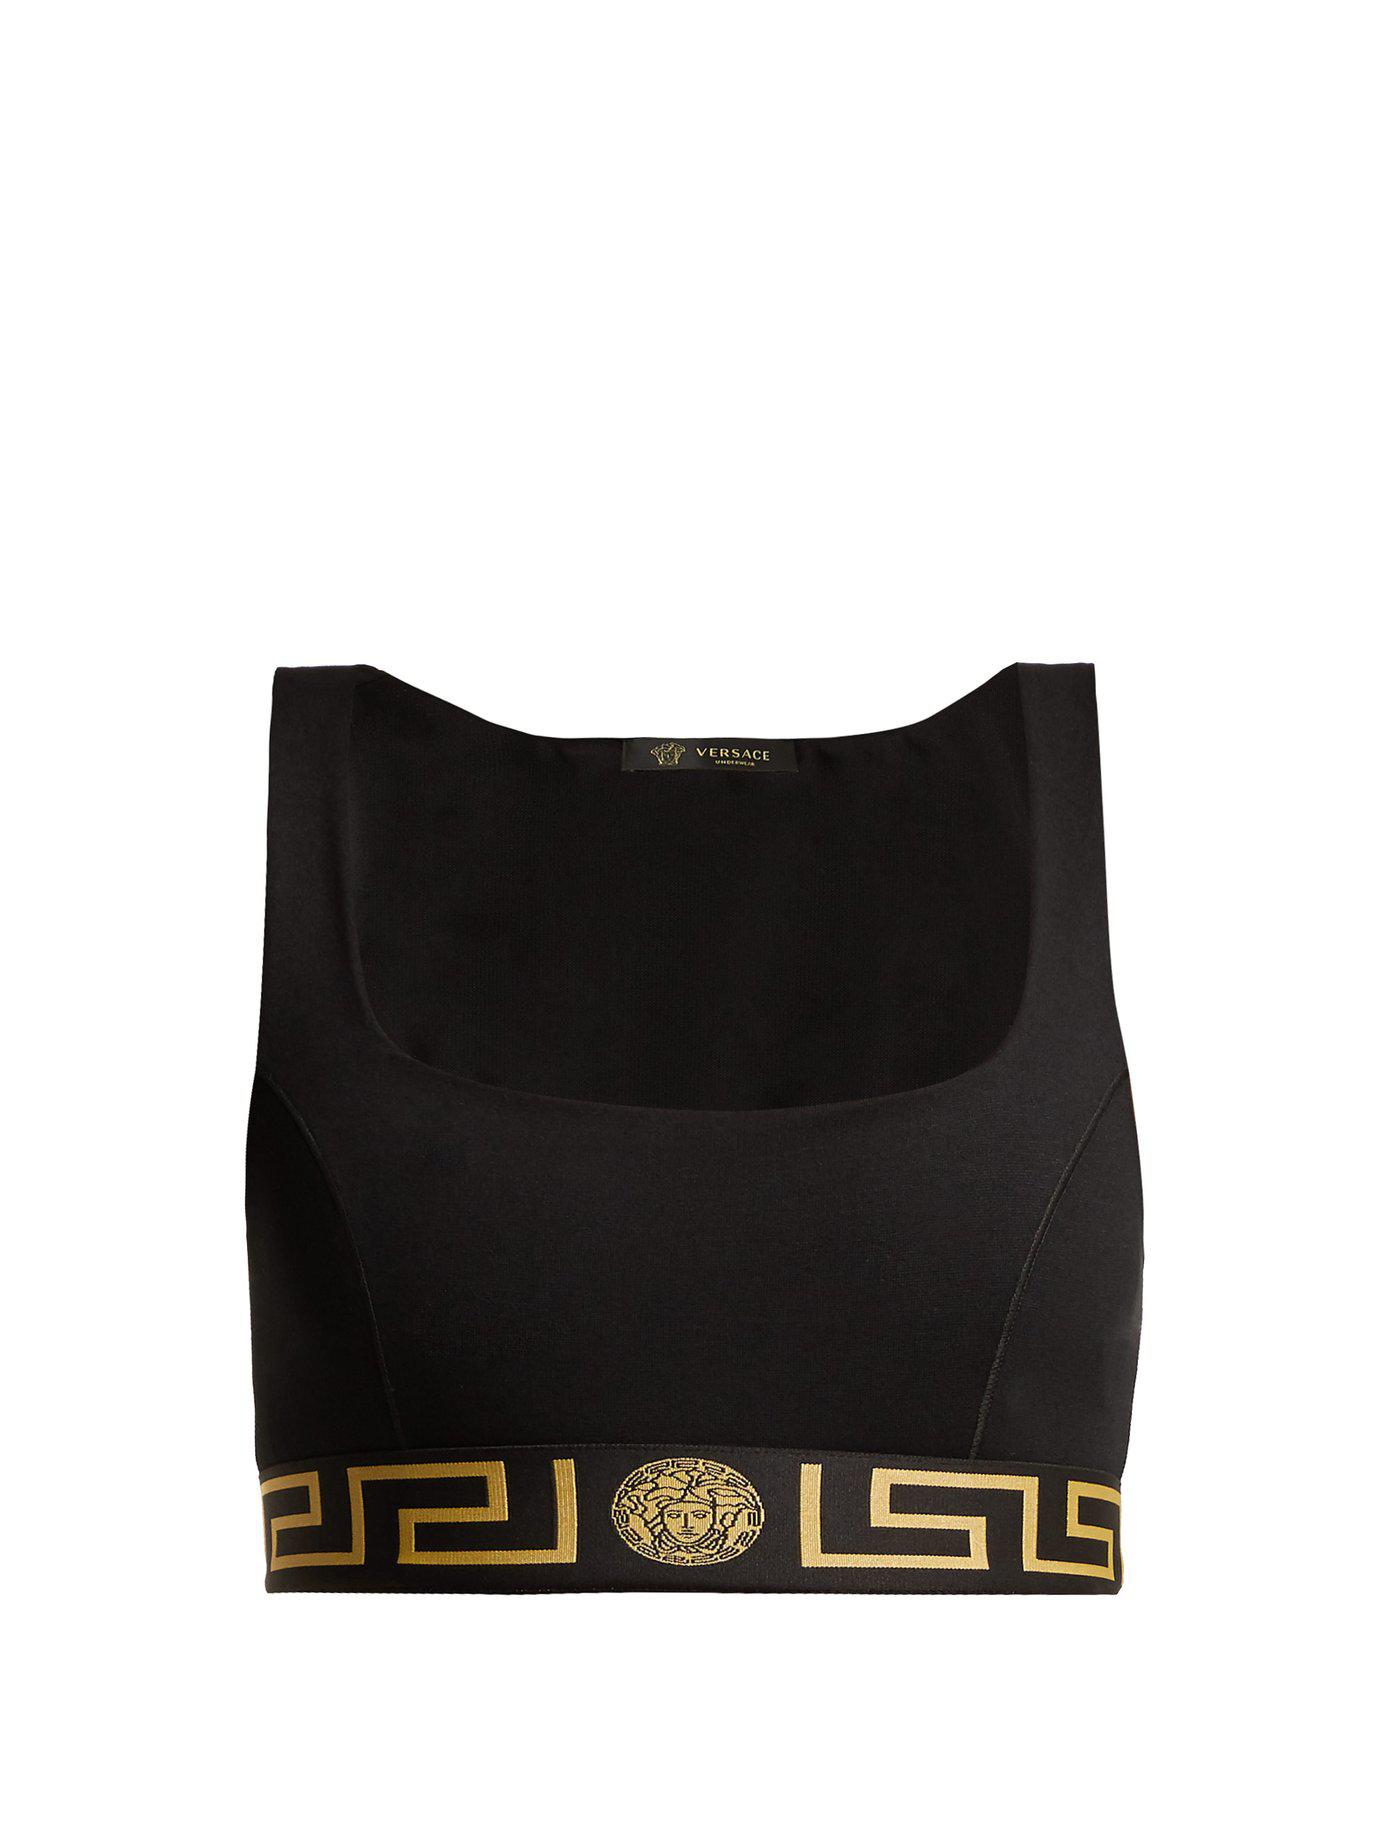 d6d30ec7f9d1fa Versace - Black Greek Key Print Sports Bra - Lyst. View fullscreen